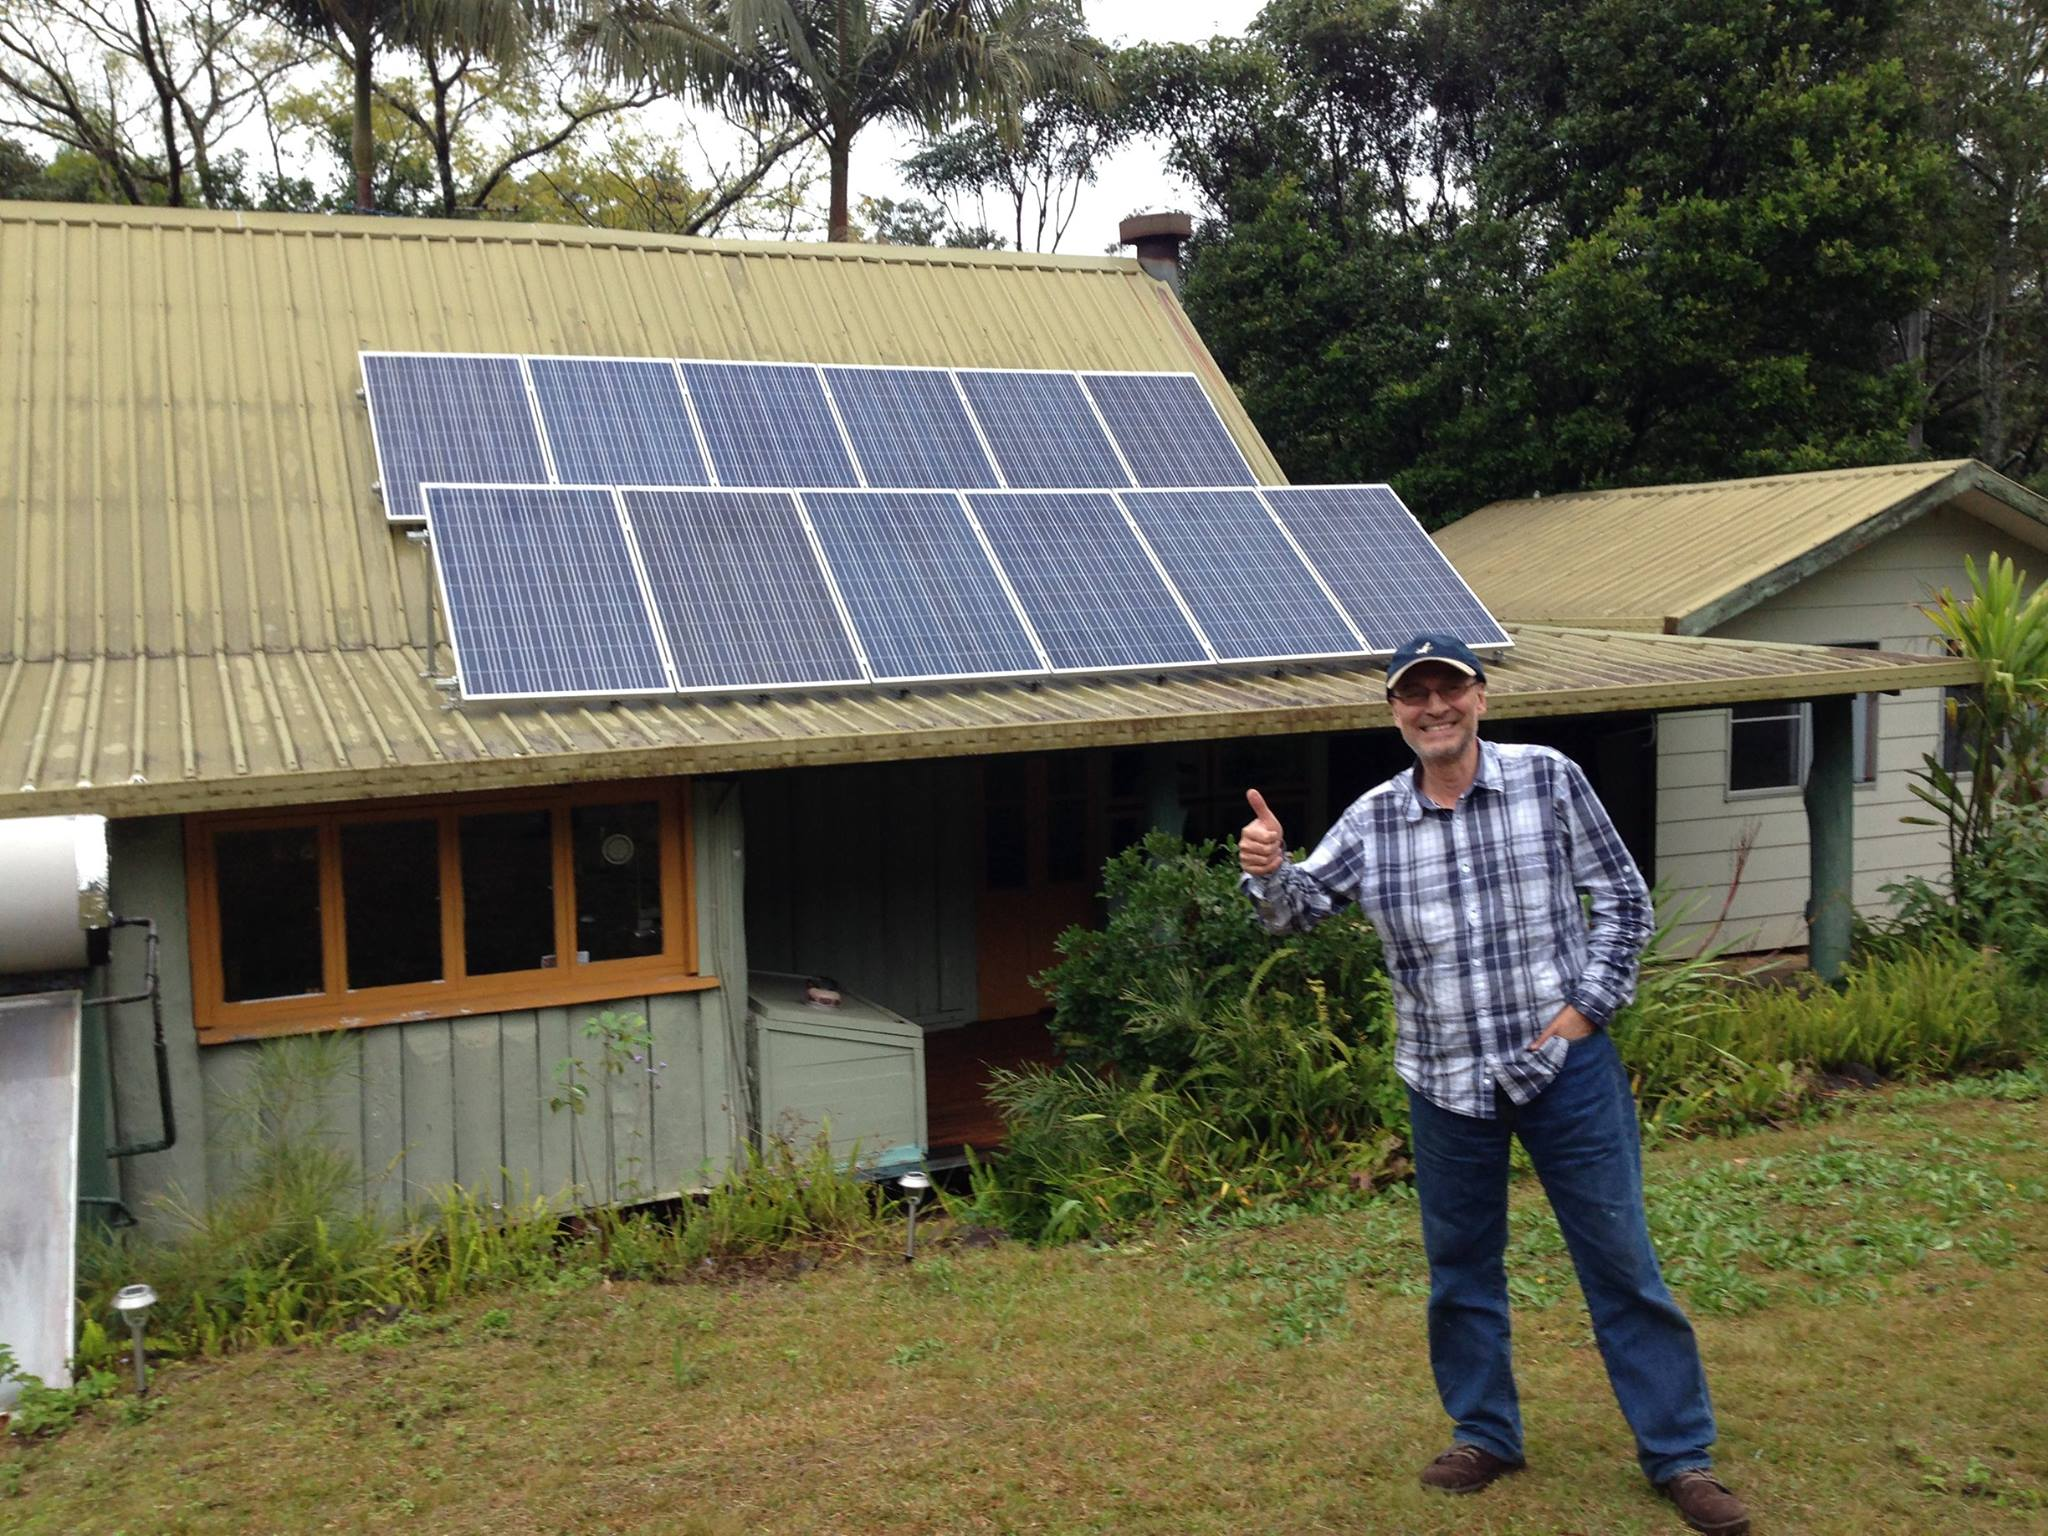 Geoff's 3kw system, norther NSW . Working well.